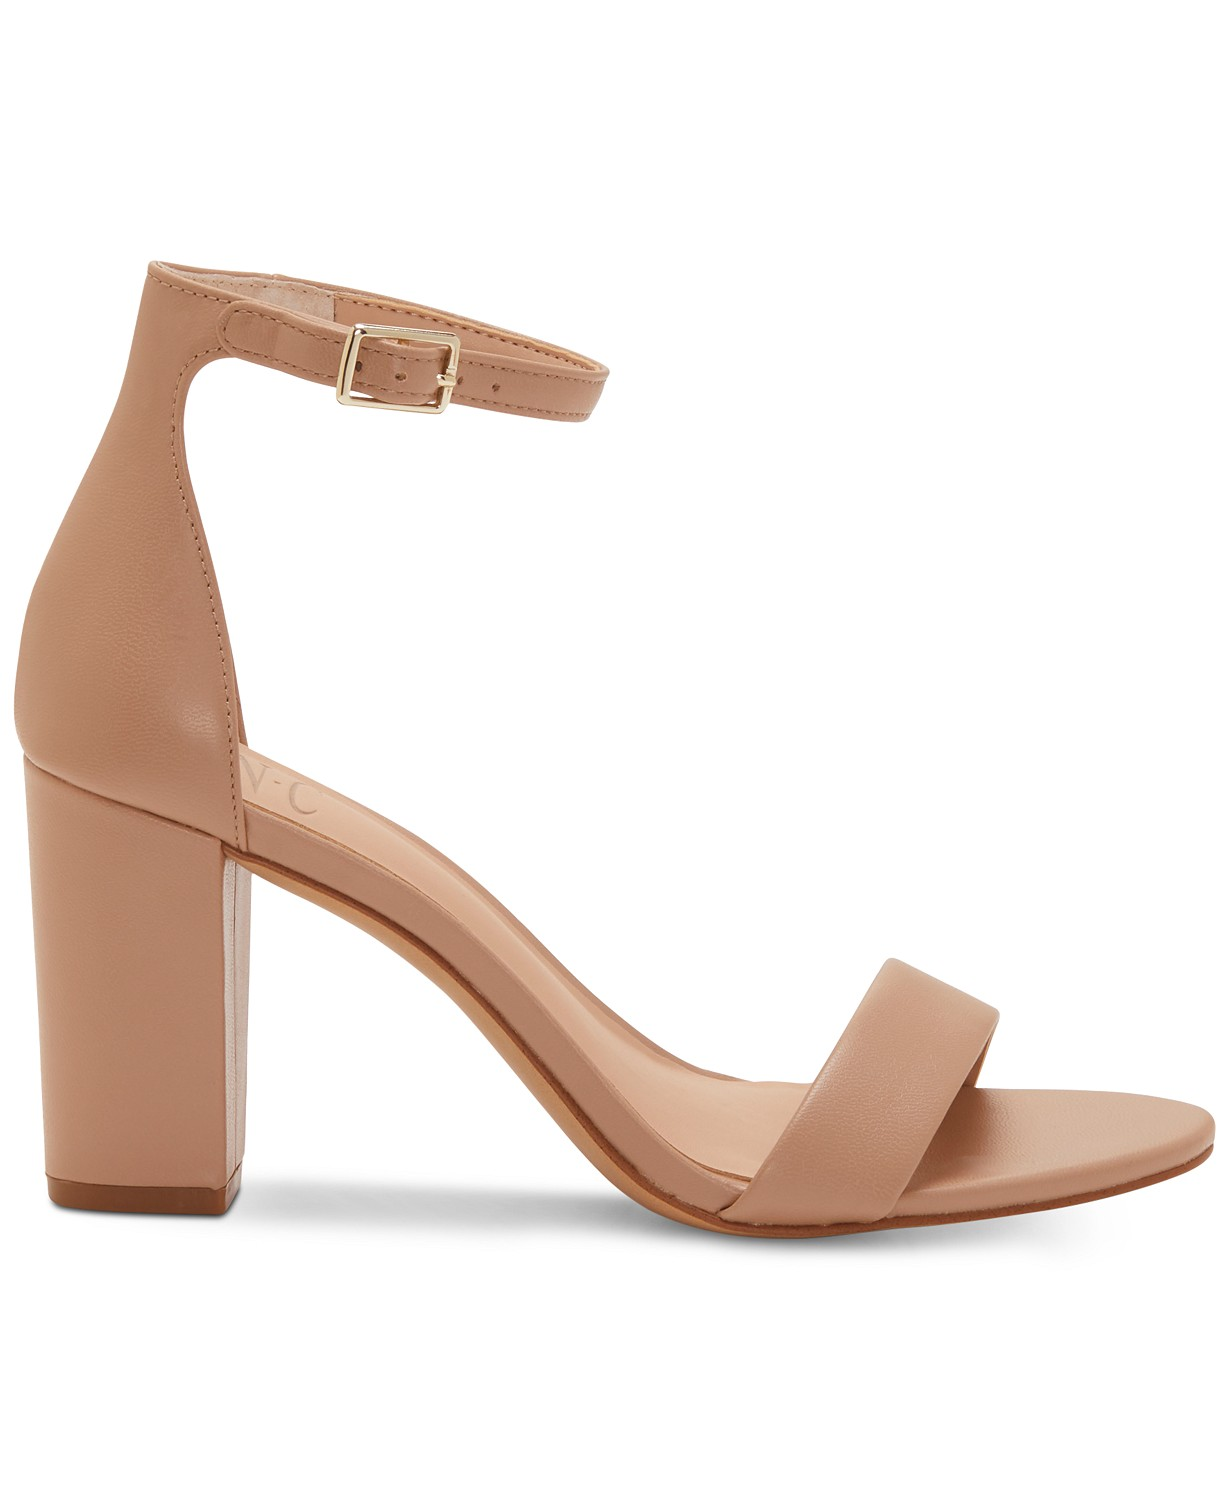 summer-wedding-guest-dress-nude-strappy-heel.jpg